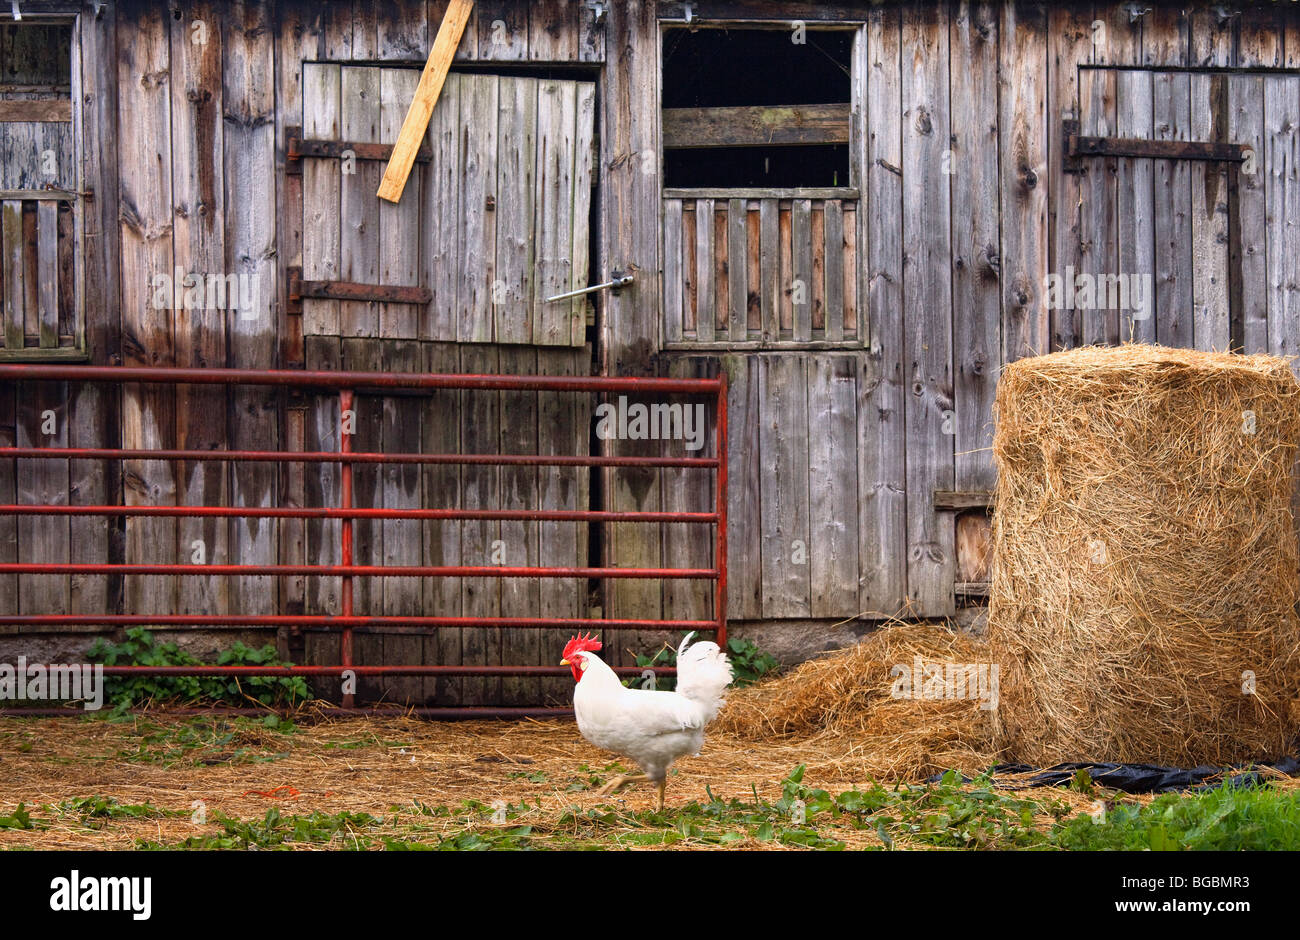 Chicken and barn - Stock Image